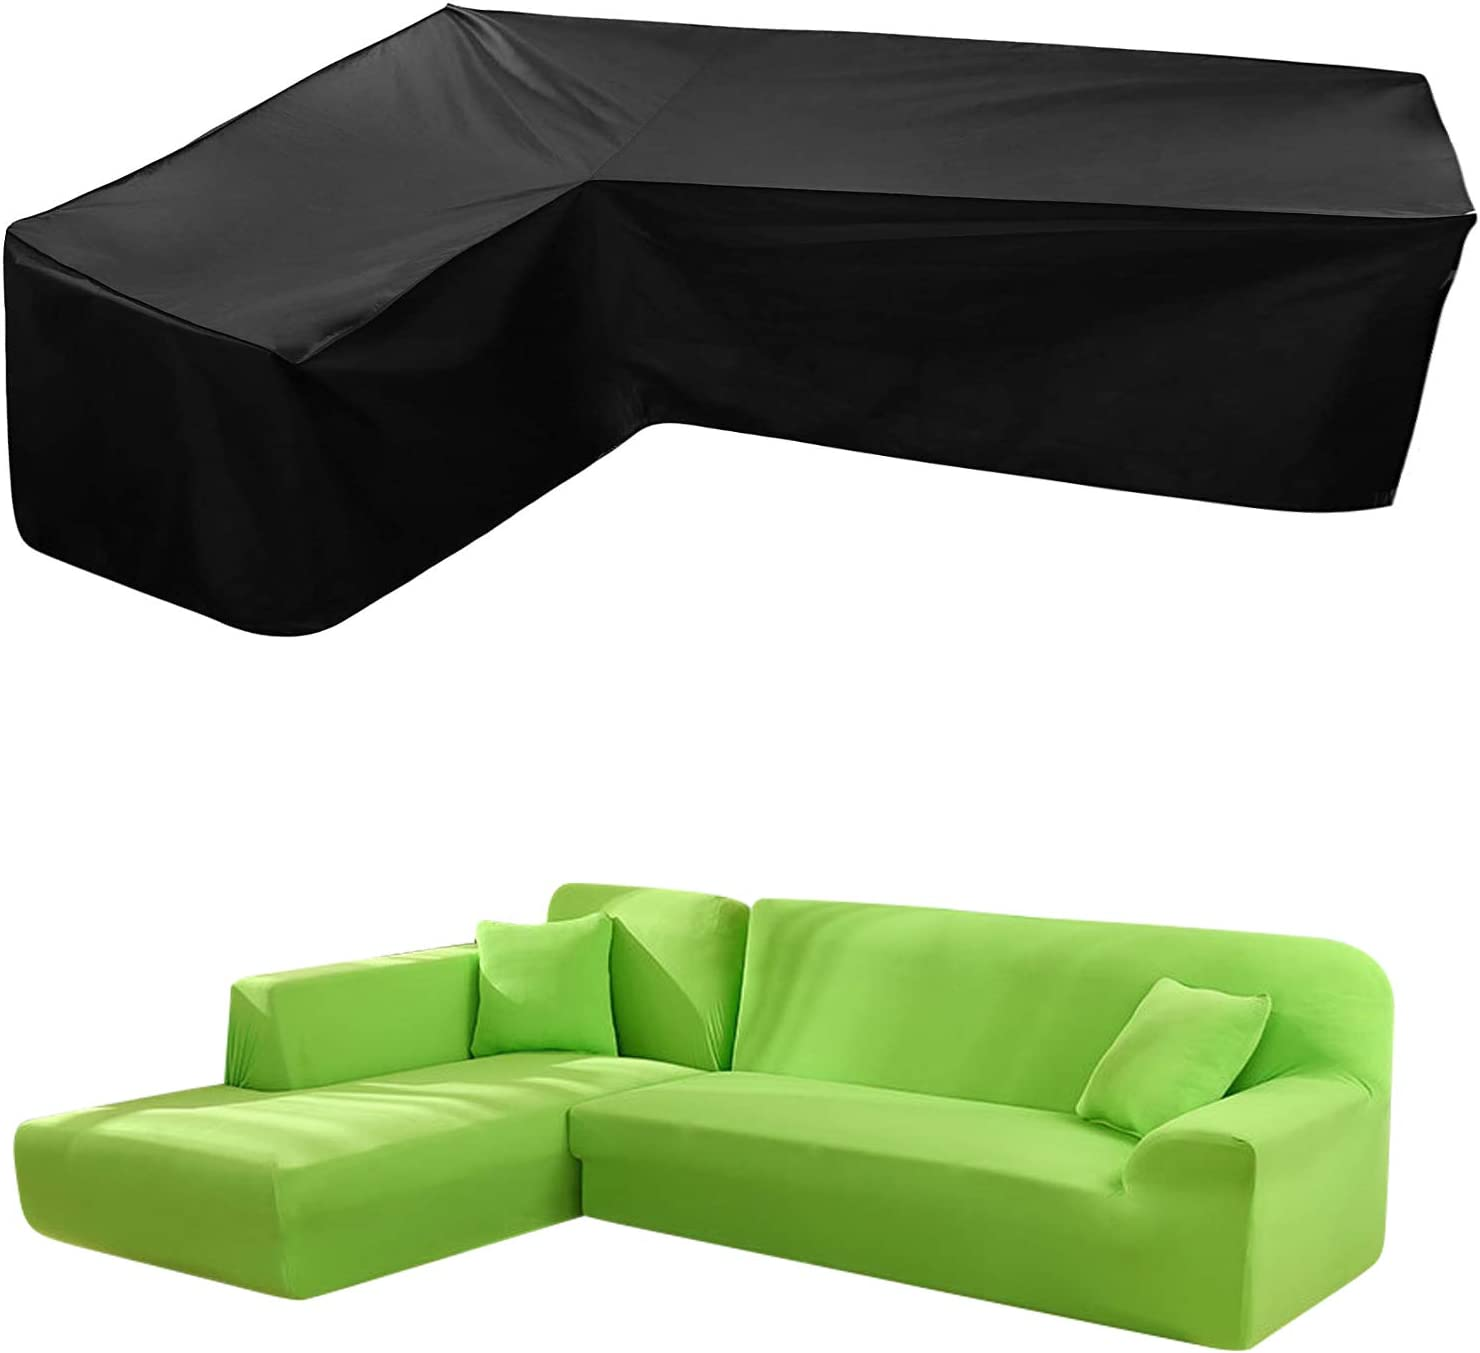 DatingDay V Type Outdoor Sofa Cover,L Type Outdoor Combination Furniture Cover, Polyester 420D, Good Waterproof Effect, 85